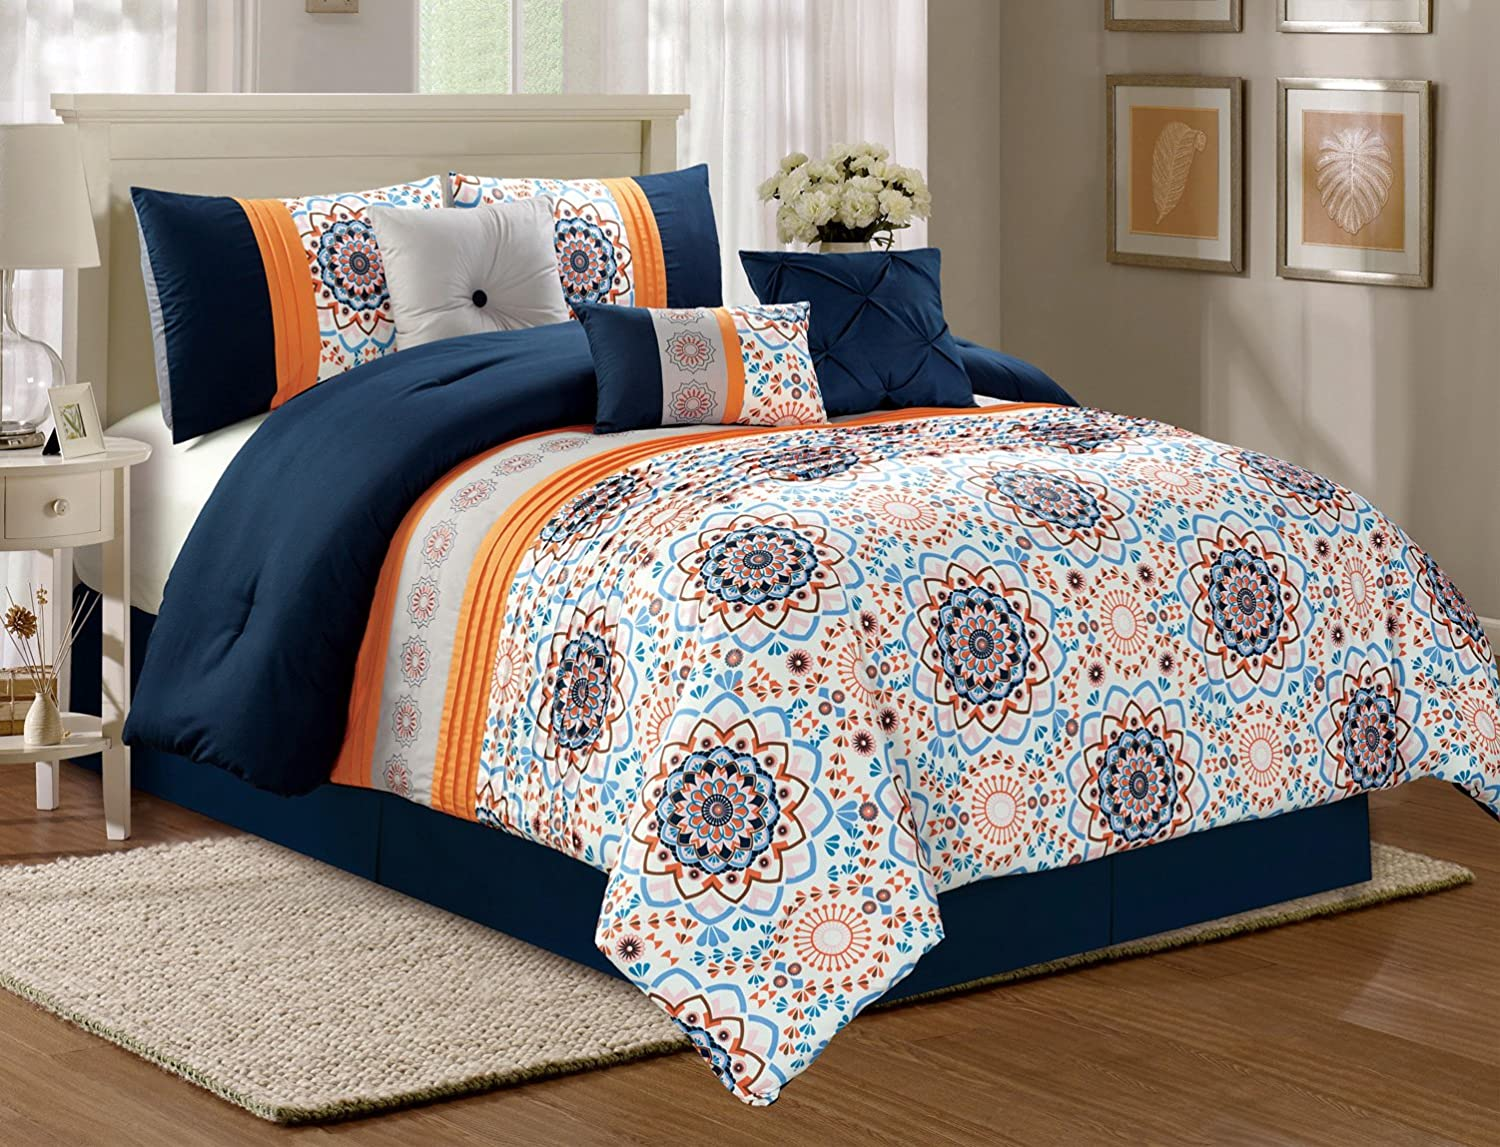 Modern 7 Piece Fine Print EMERY Bedding Navy Blue / White / Orange QUEEN Over Pleat Comforter Set with accent pillows